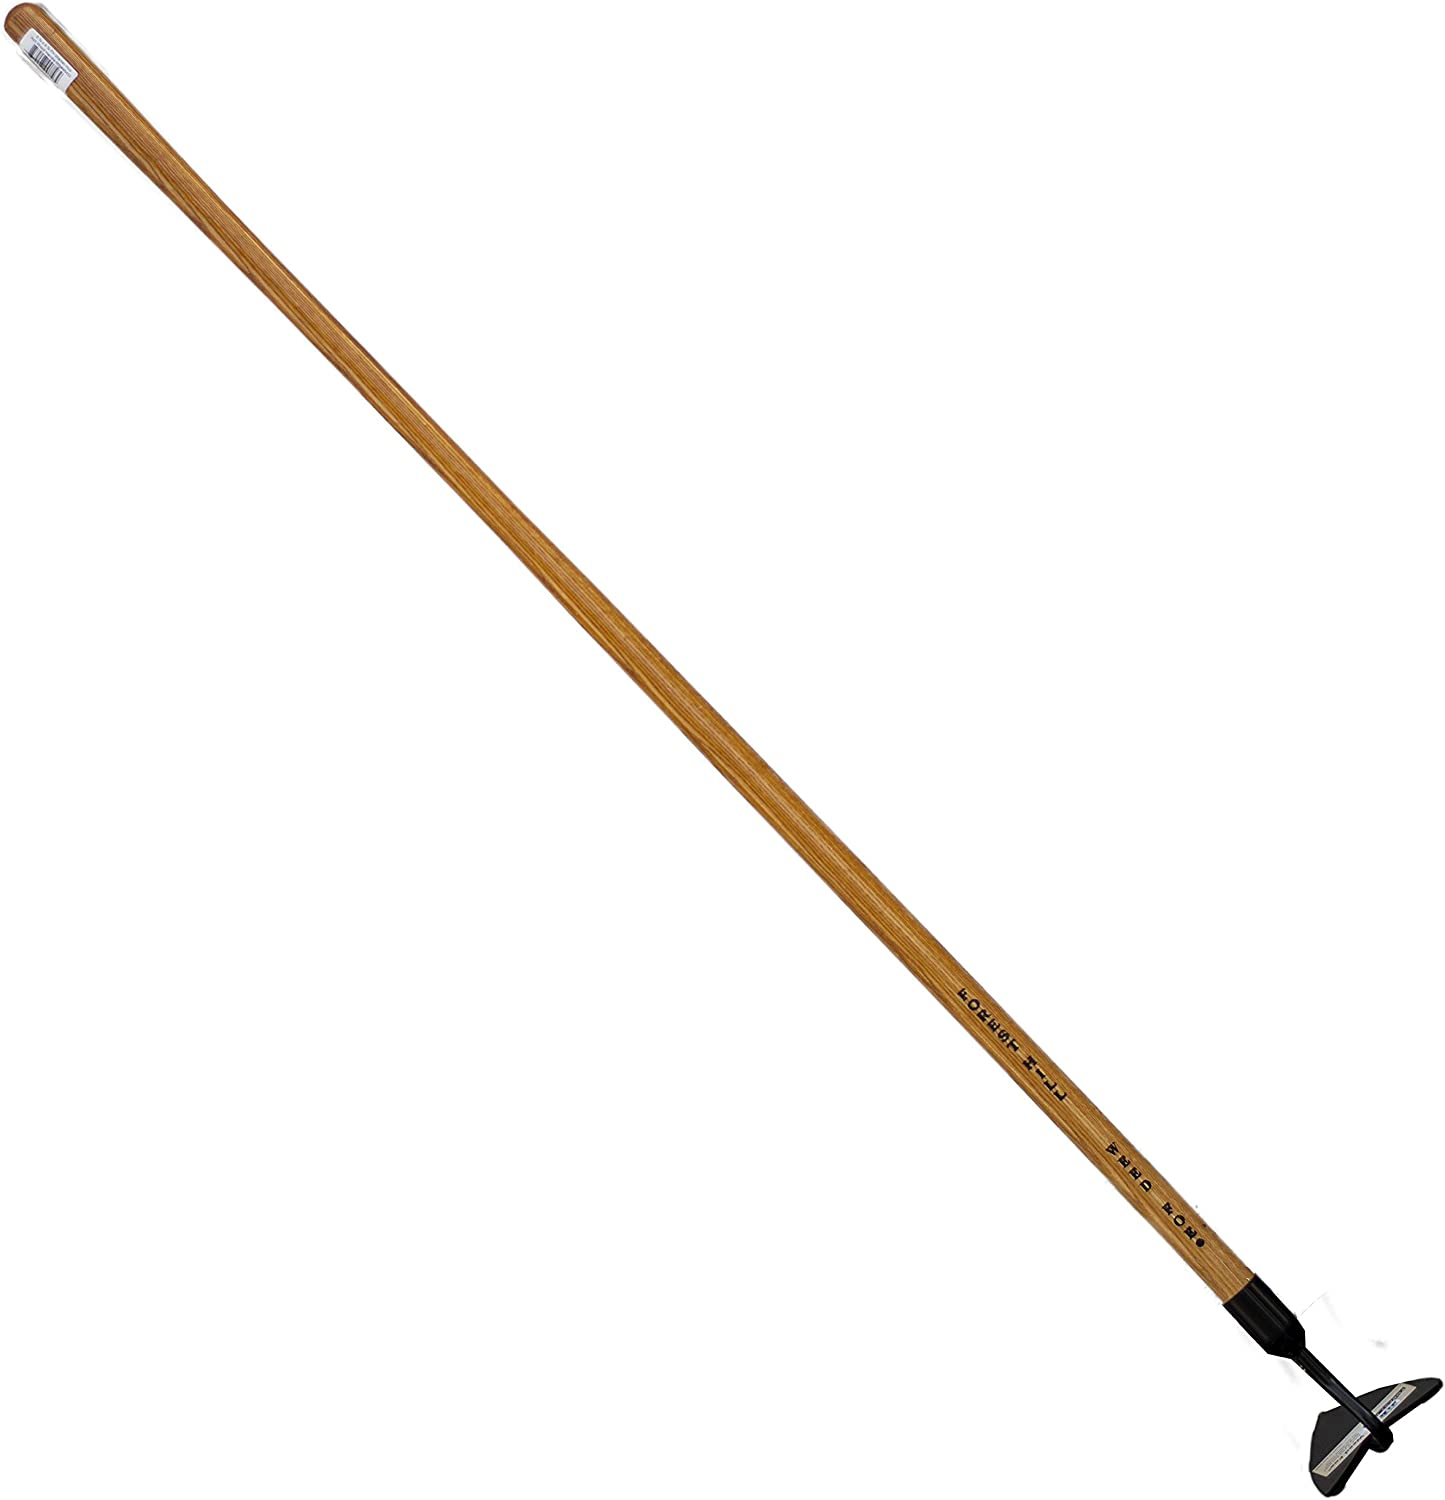 FOREST HILL Weed Foe Hardened and Tempered Spring Steel, Solid Ash Wood Handle Hoe (Warren, 6.37 x 4.75-inch)